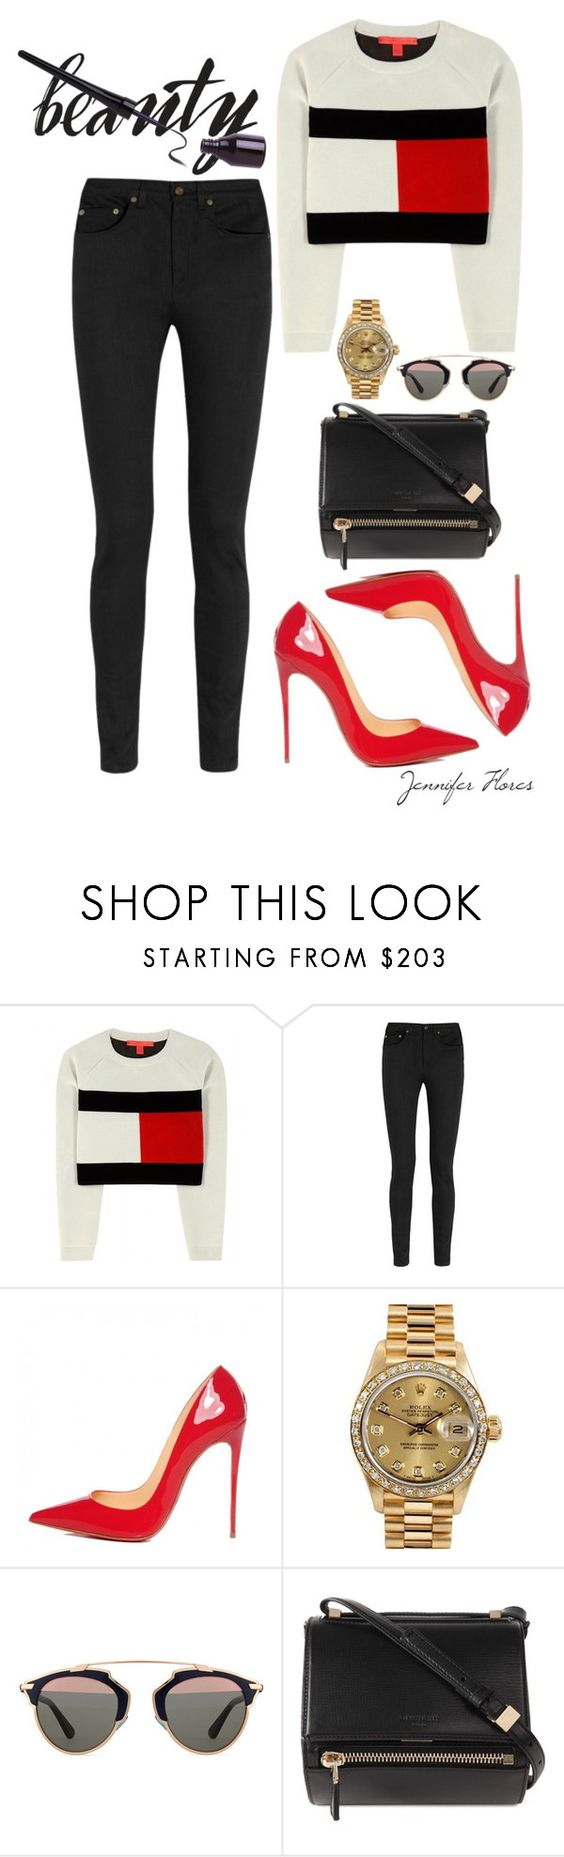 """beauty."" by jenniferfls on Polyvore featuring moda, Tommy Hilfiger, Yves Saint Laurent, Christian Louboutin, Rolex, Christian Dior y Givenchy"